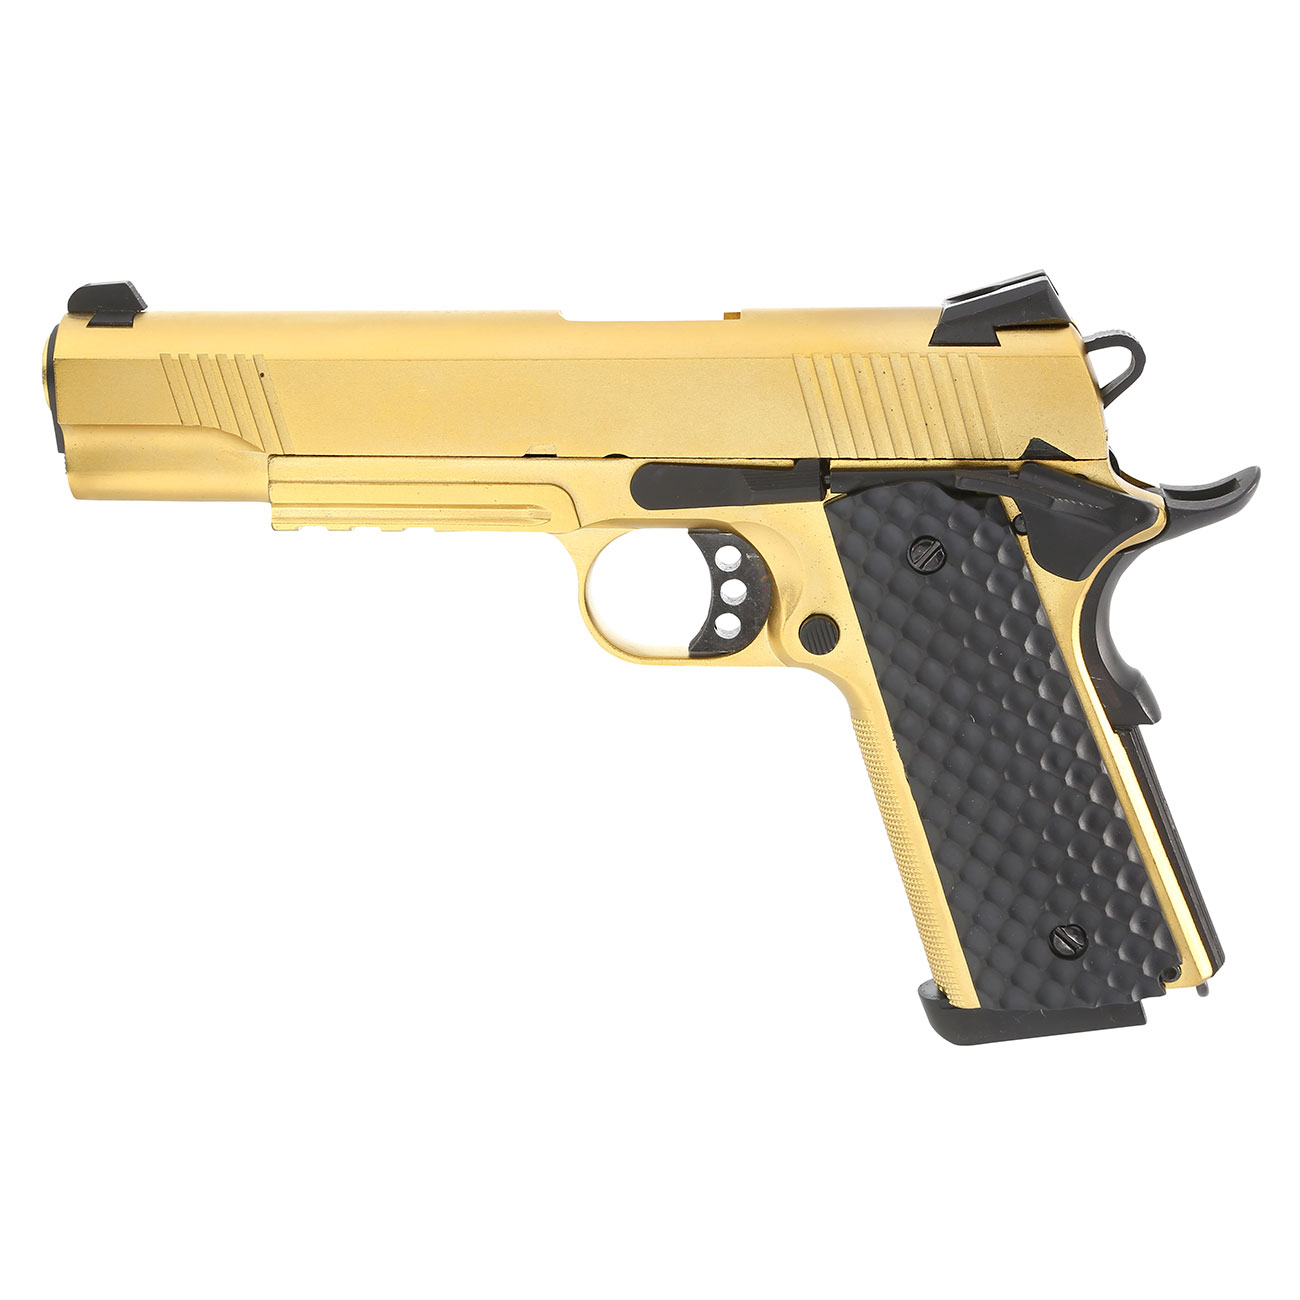 Nuprol Raven M1911 MEU Railed Vollmetall GBB 6mm BB gold 1